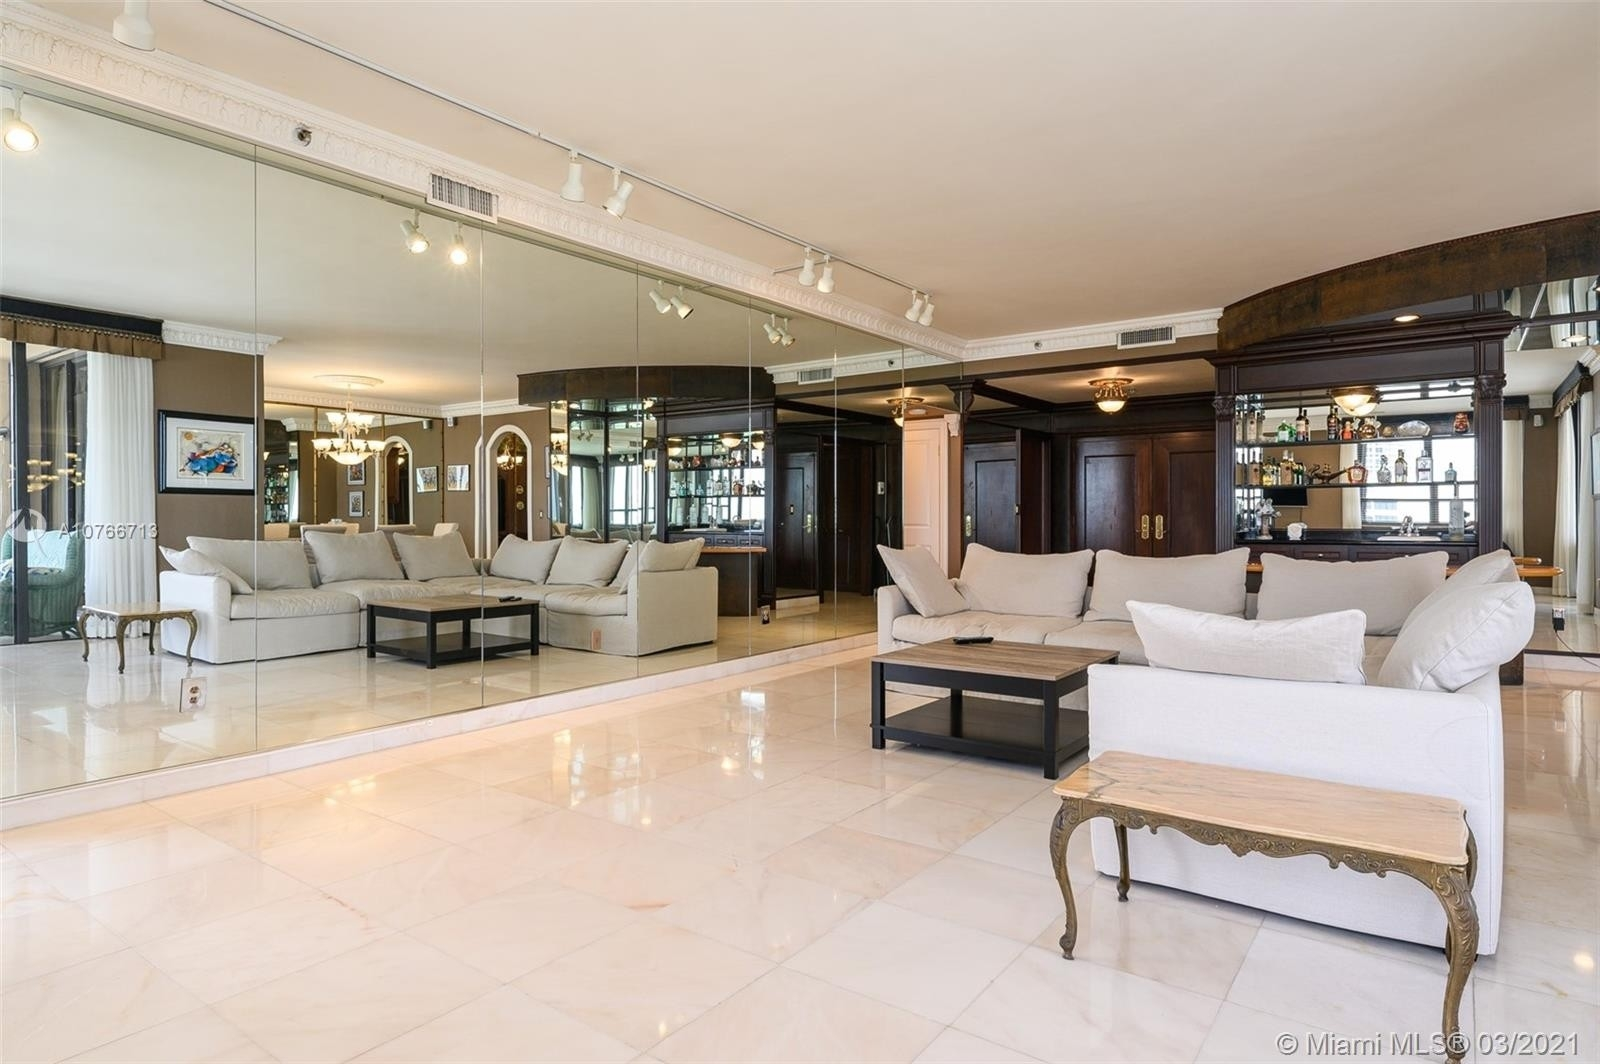 12. Condominiums for Sale at 10175 Collins Ave , PH5 Bal Harbour, FL 33154